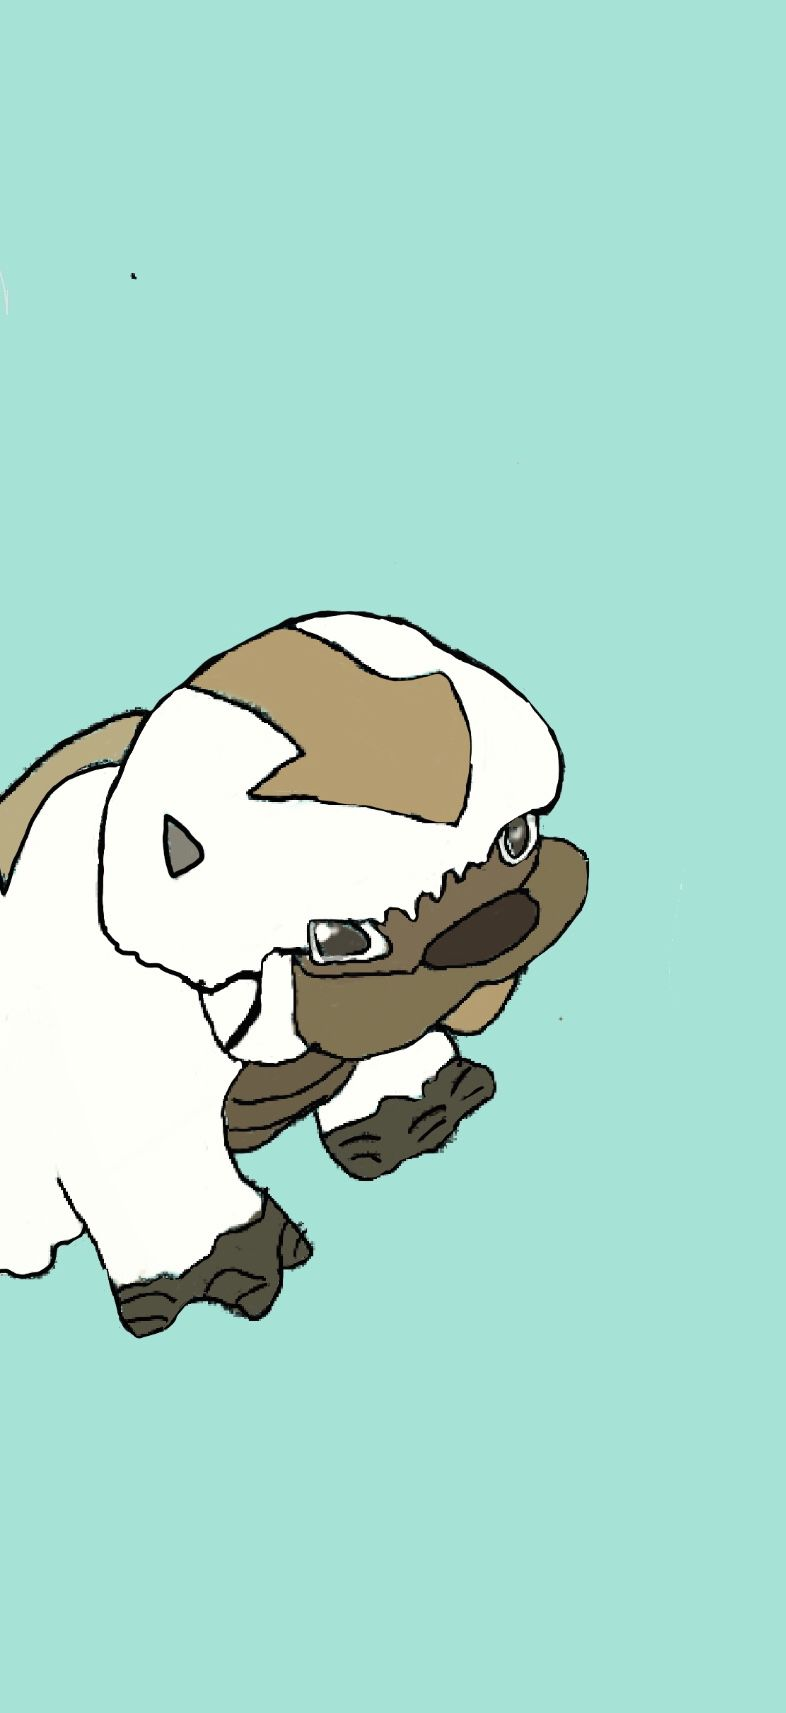 Appa Wallpaper In 2020 Avatar The Last Airbender Art Cute Wallpaper Backgrounds Cute Wallpapers